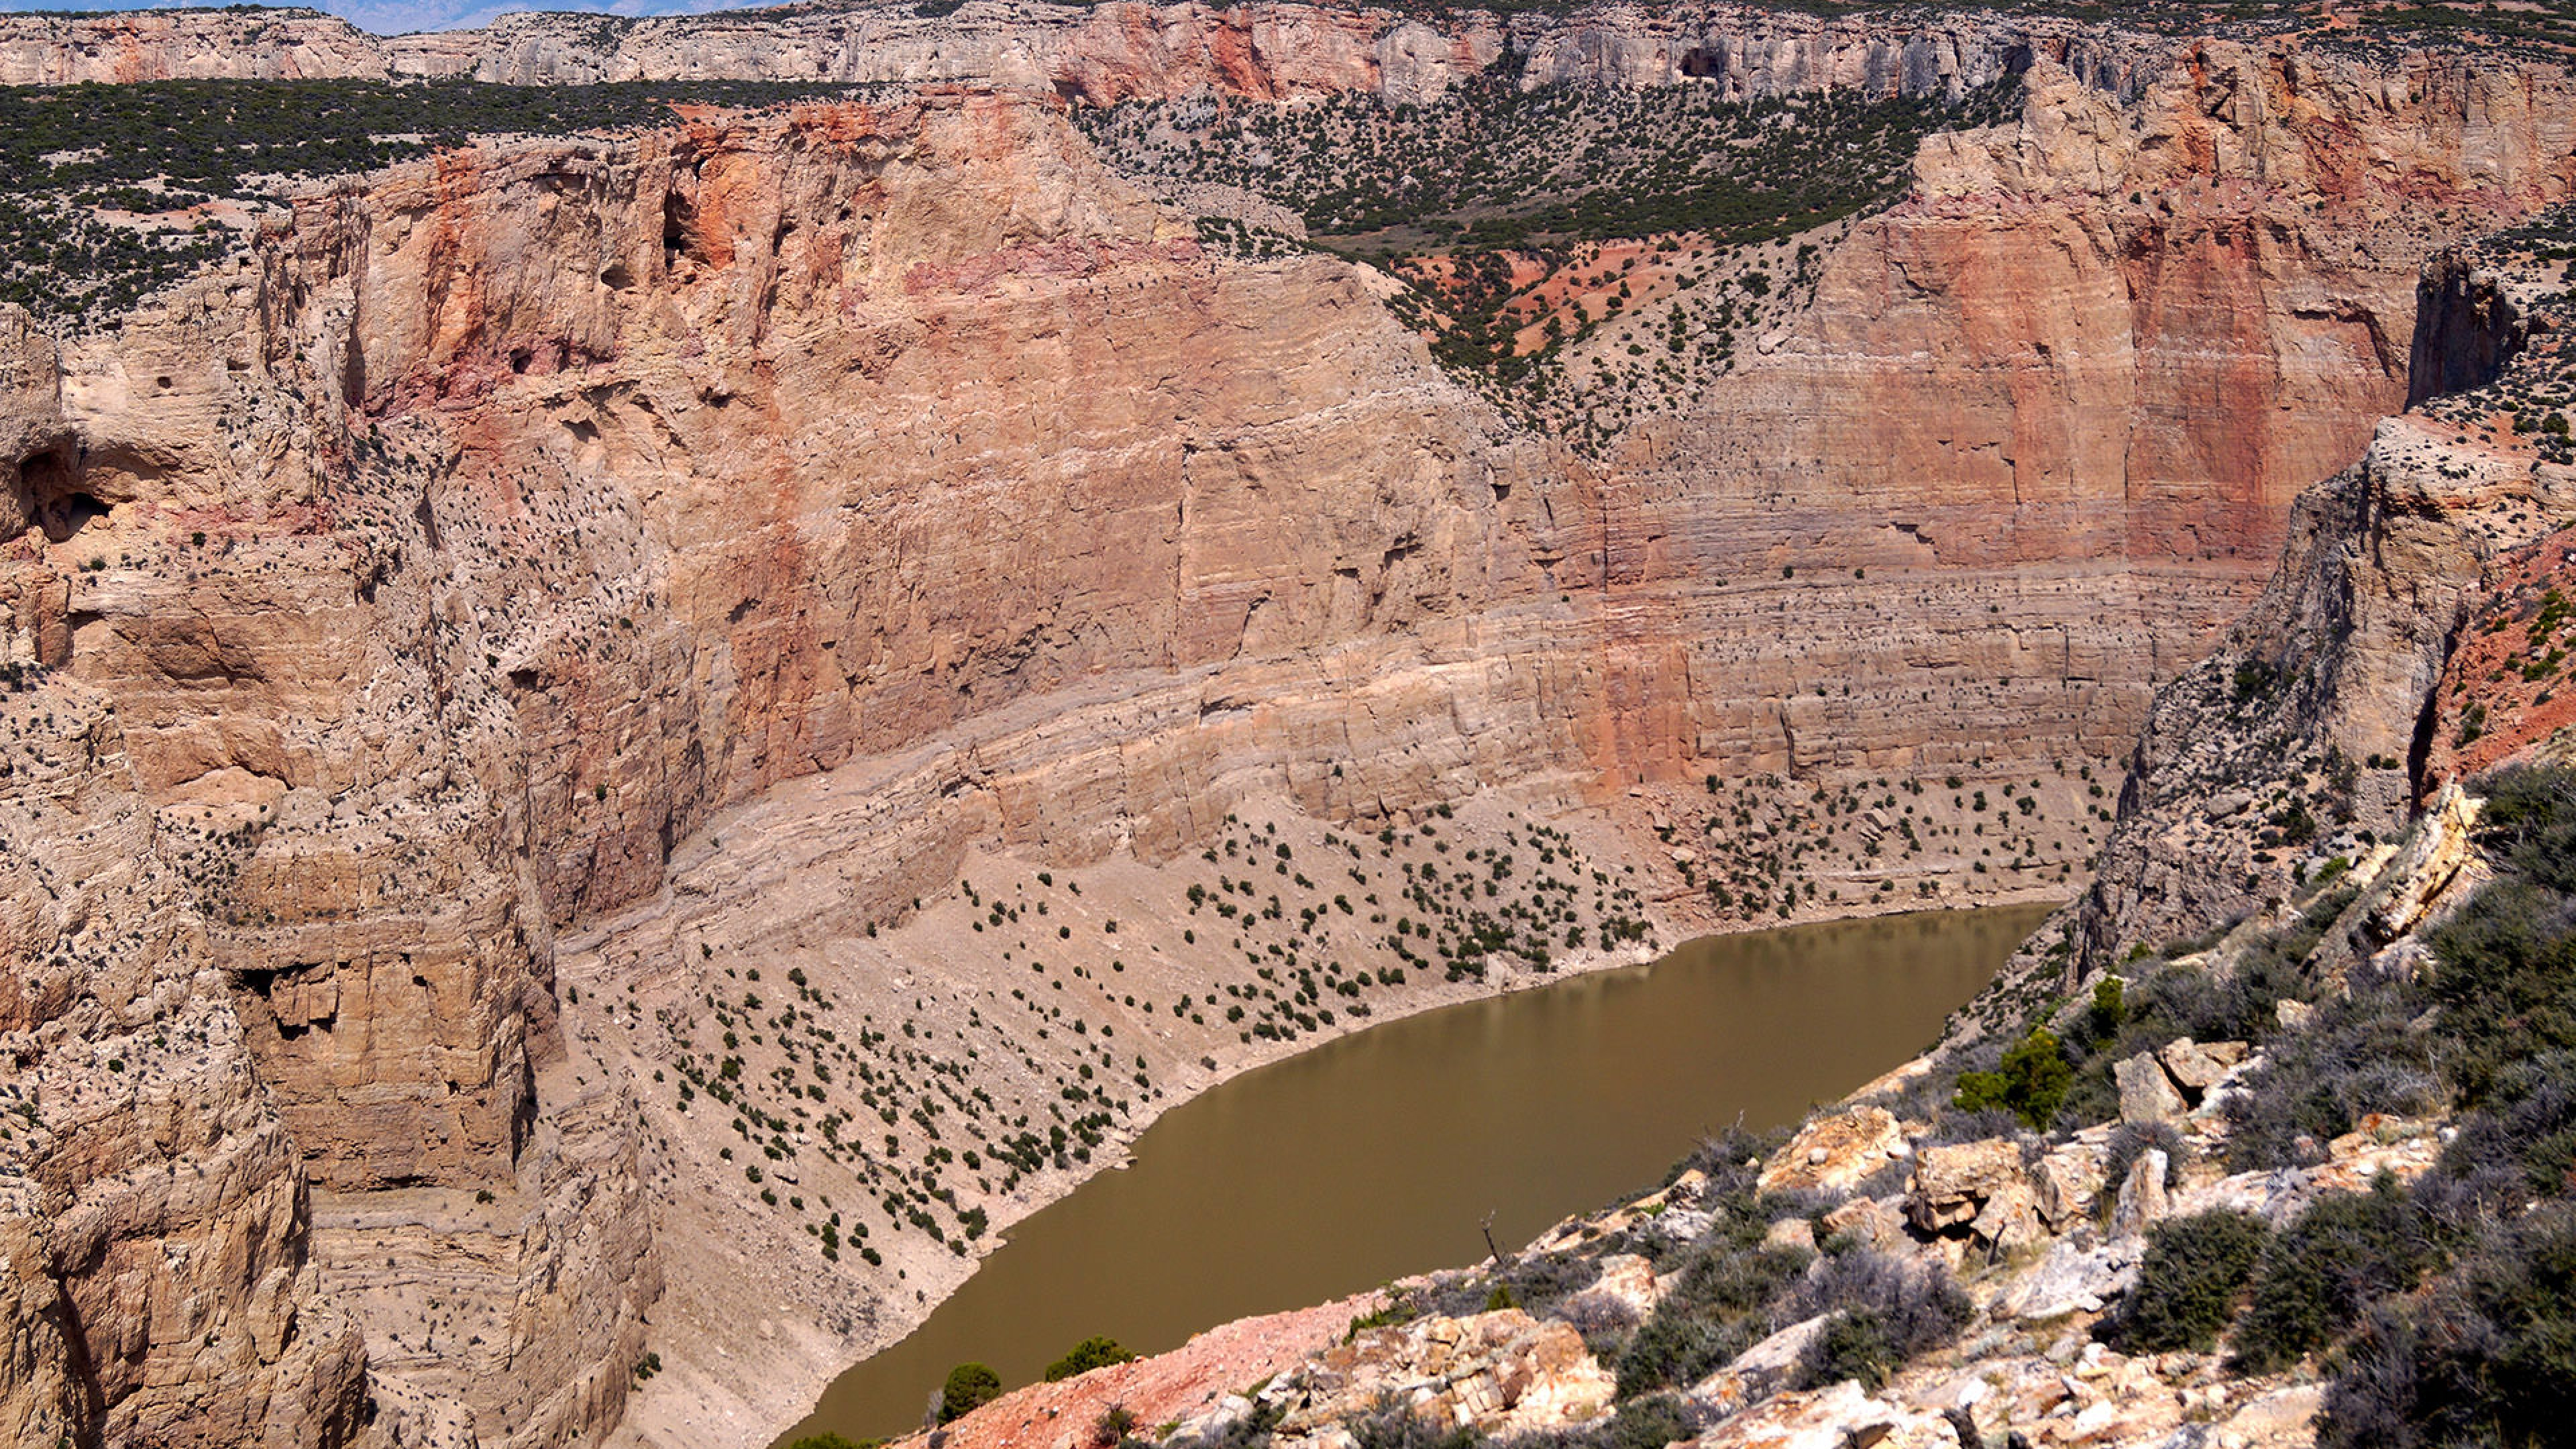 View of the waters from atop the canyon walls